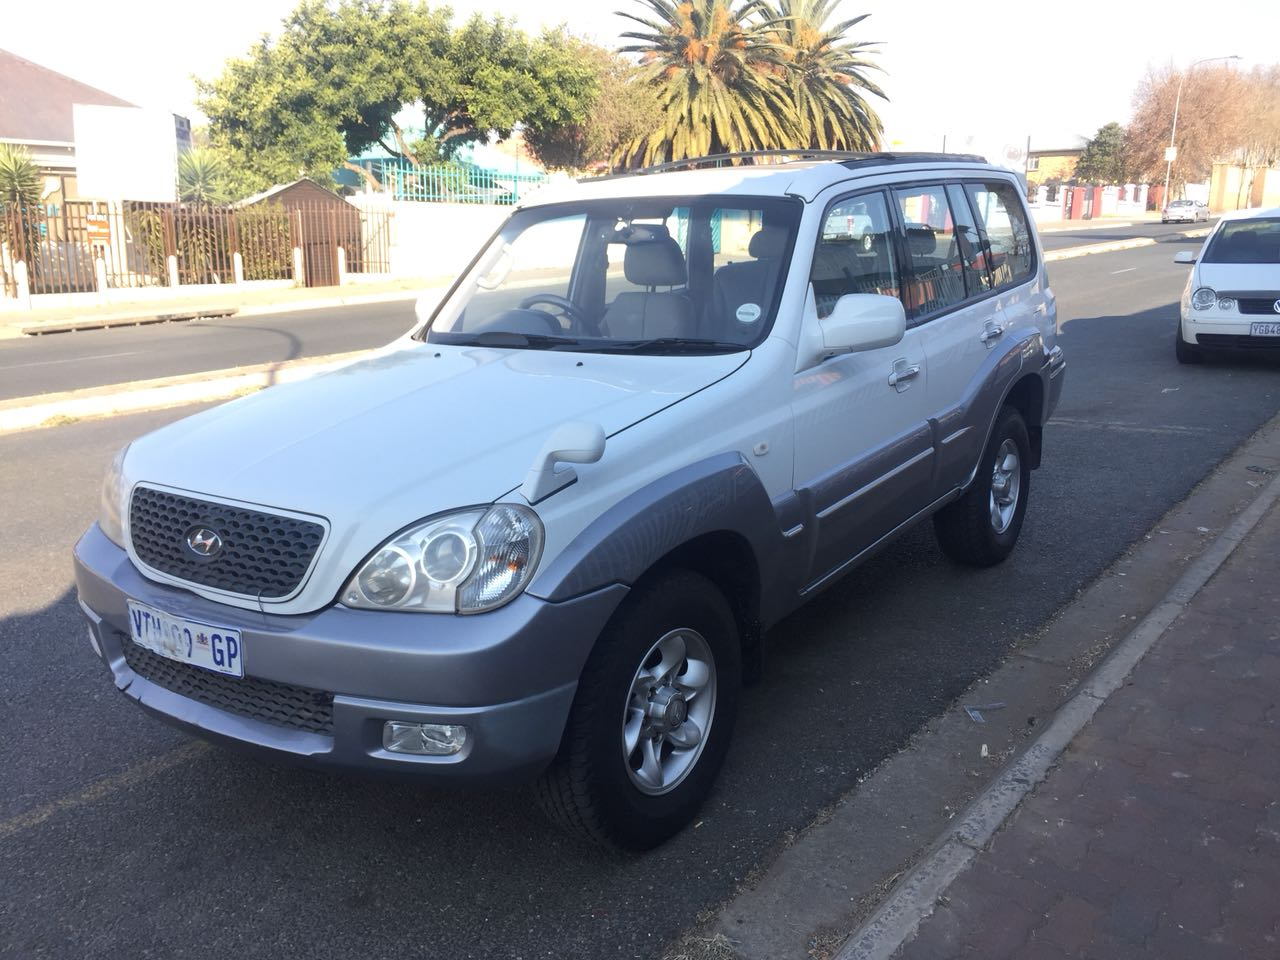 2007 Hyundai Terracan 3.5 V6 7 seater automatic